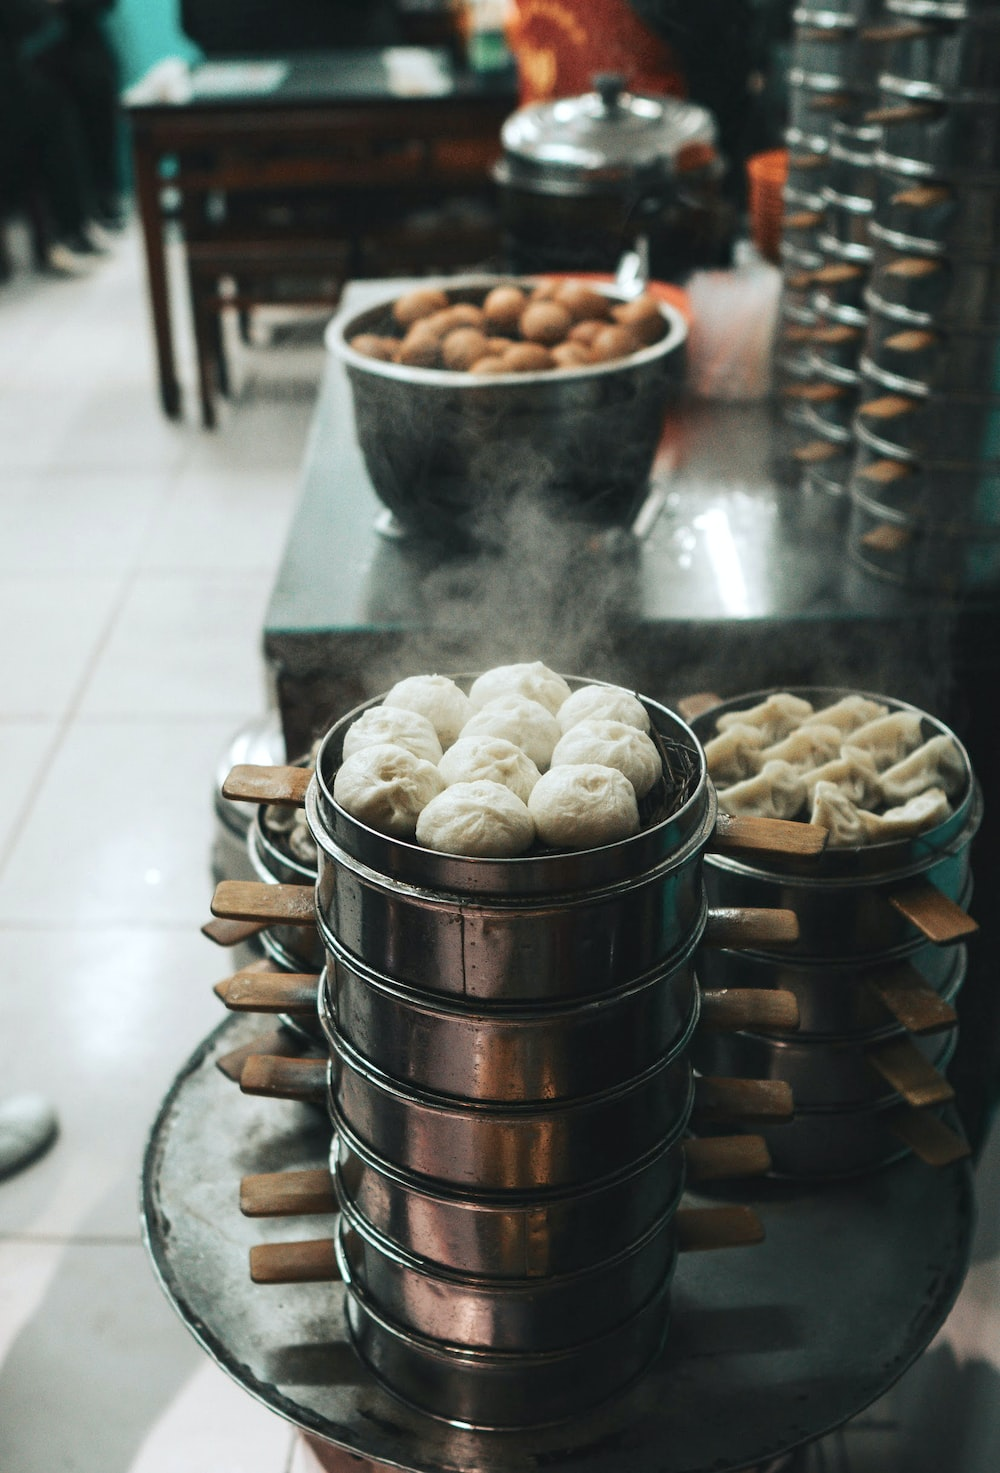 steamed food in bowls